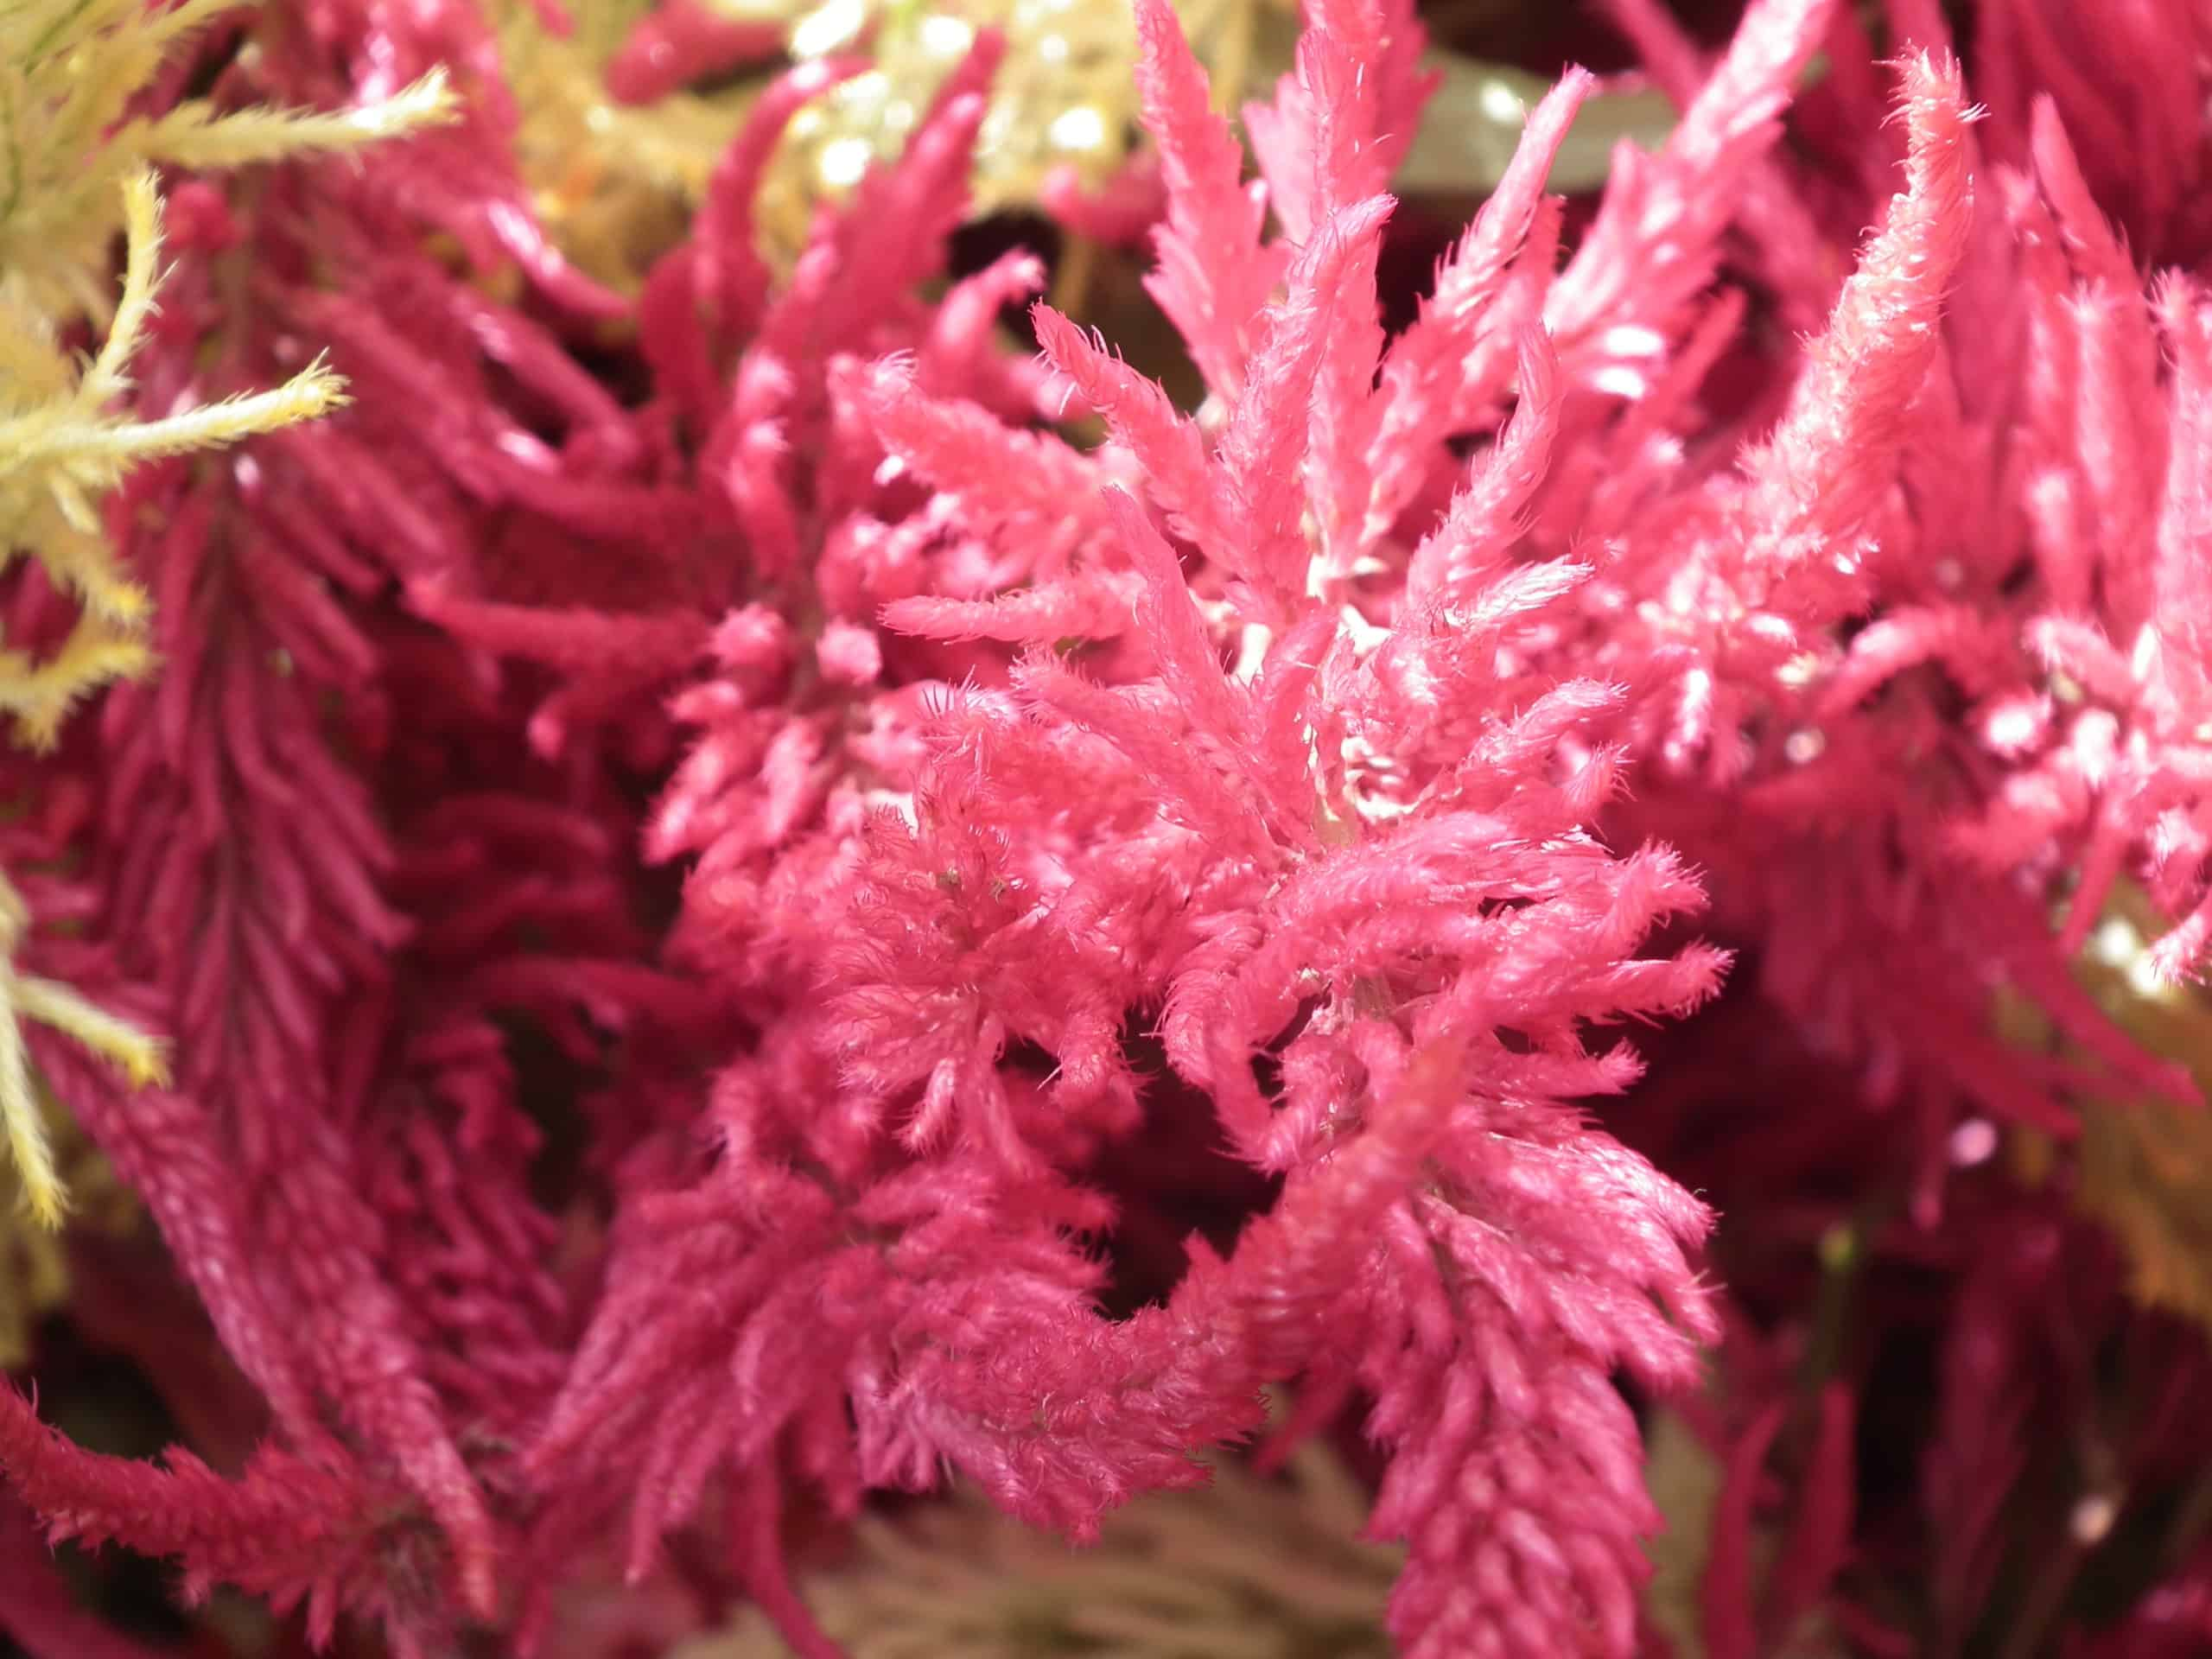 Celosia. (Amaranth Family. Wool flower).